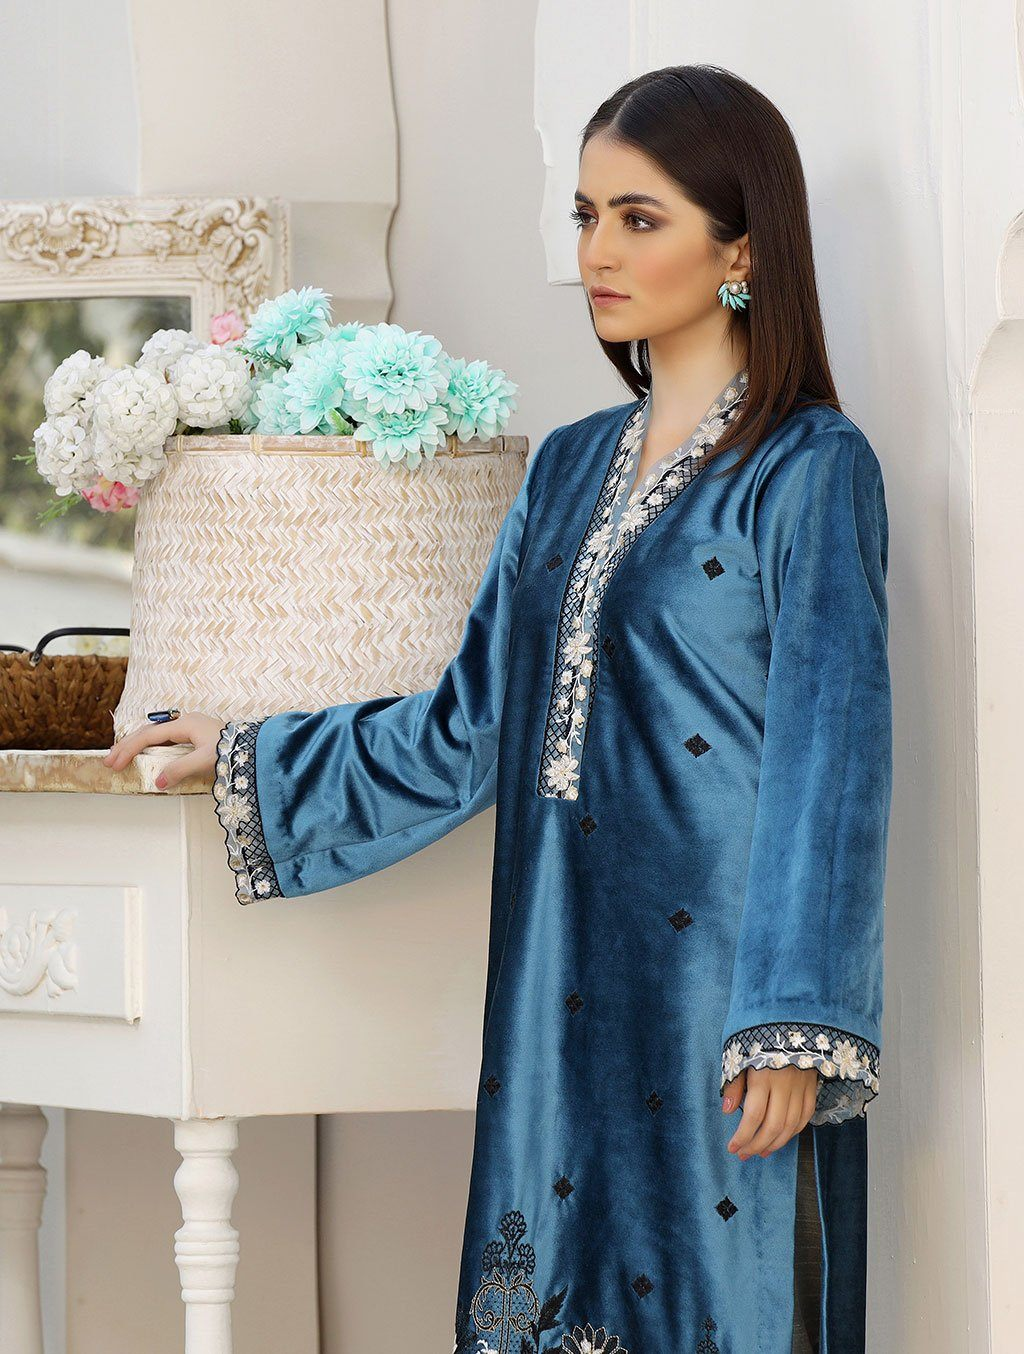 Luxury Embroidered Velvet Pret Kurti ER-141 Luxury Pret FASSTILAD